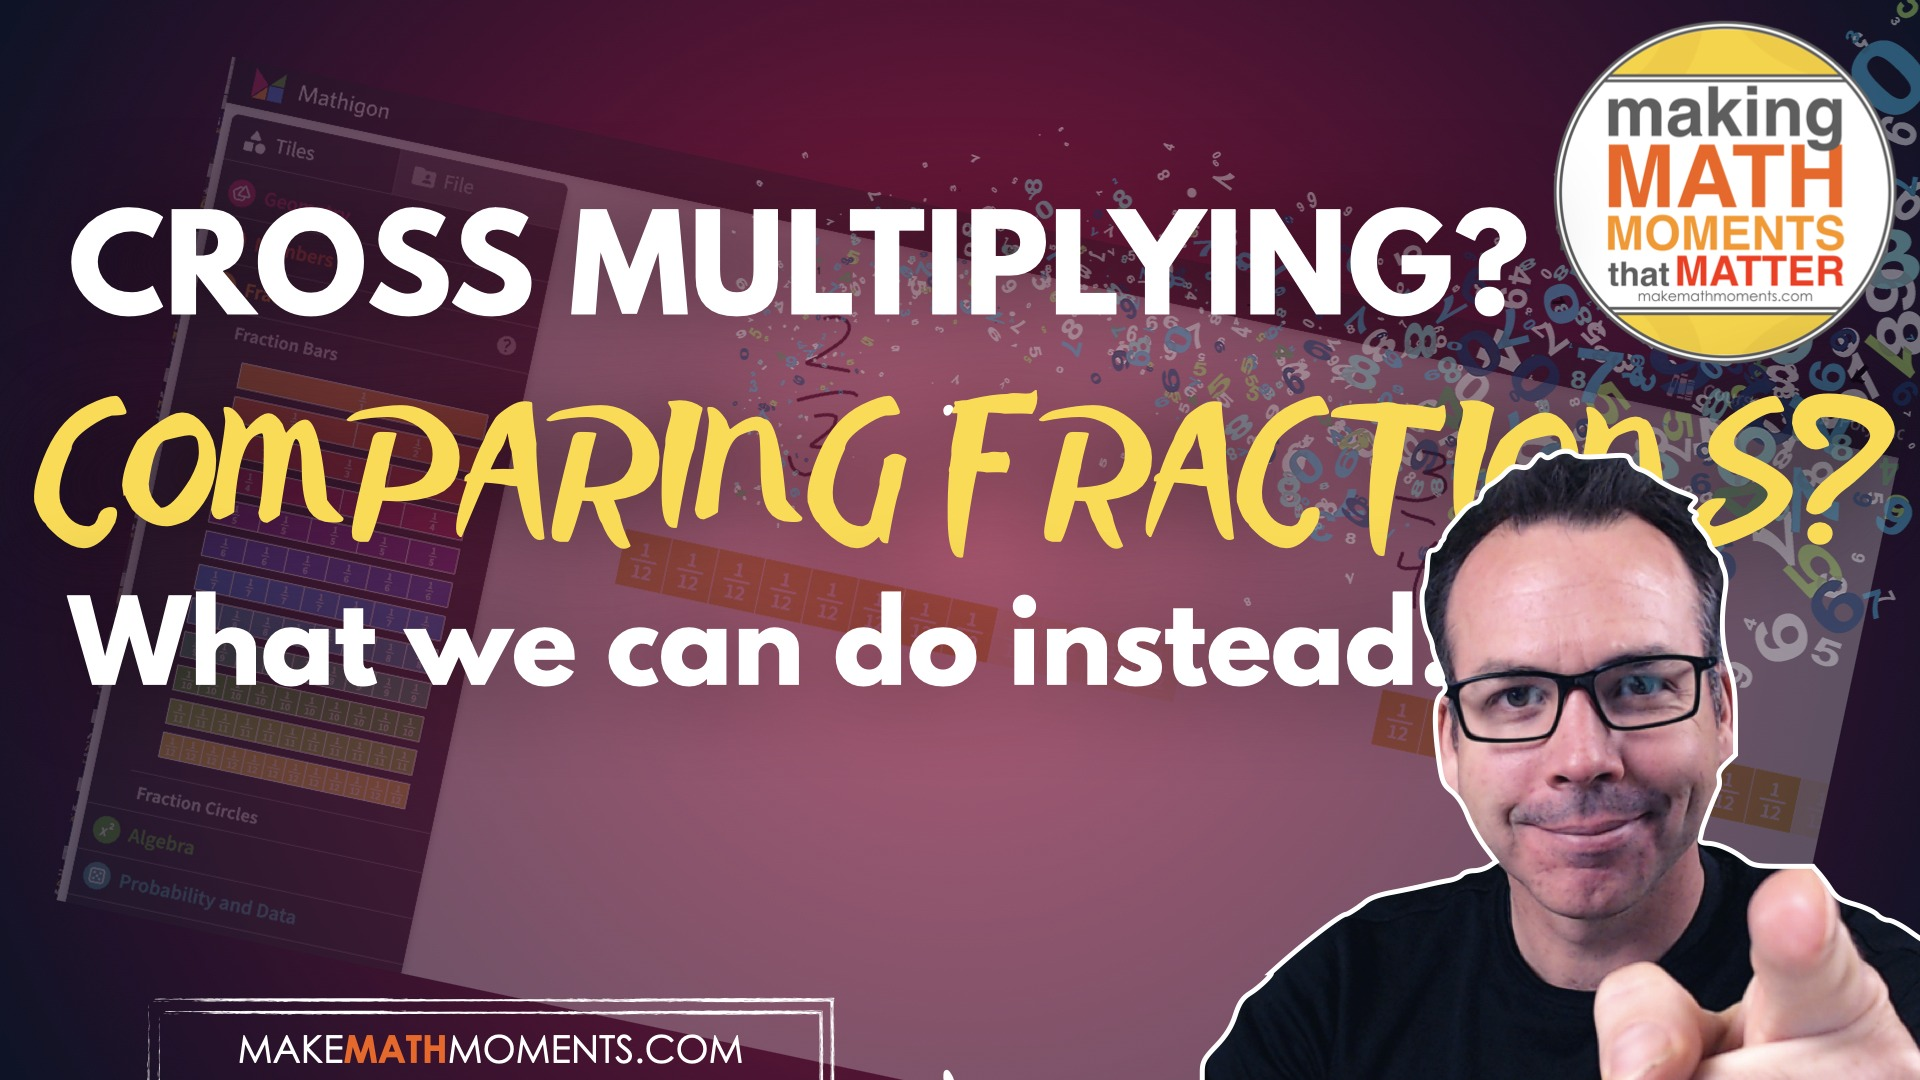 Cross Multiplying When Comparing Fractions? What We Should Do Instead!